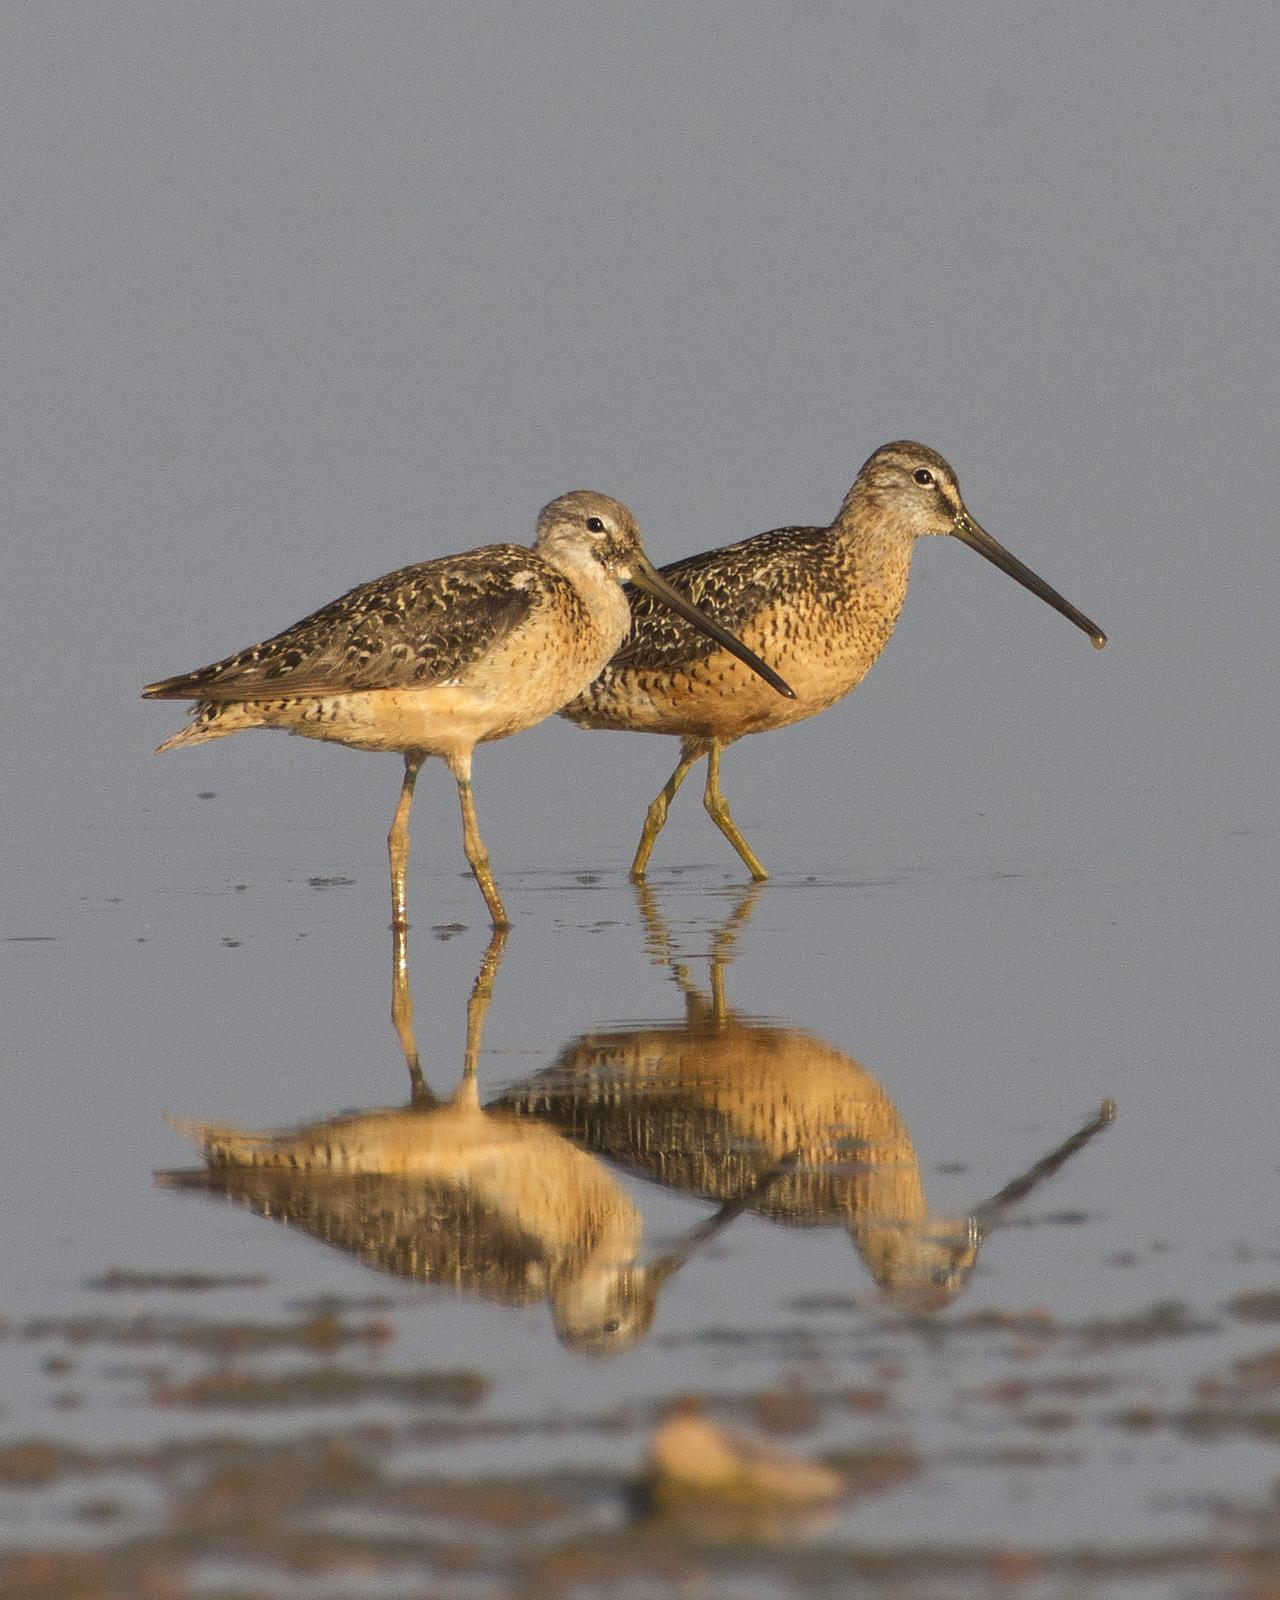 Long-billed Dowitcher Photo by Bill Adams